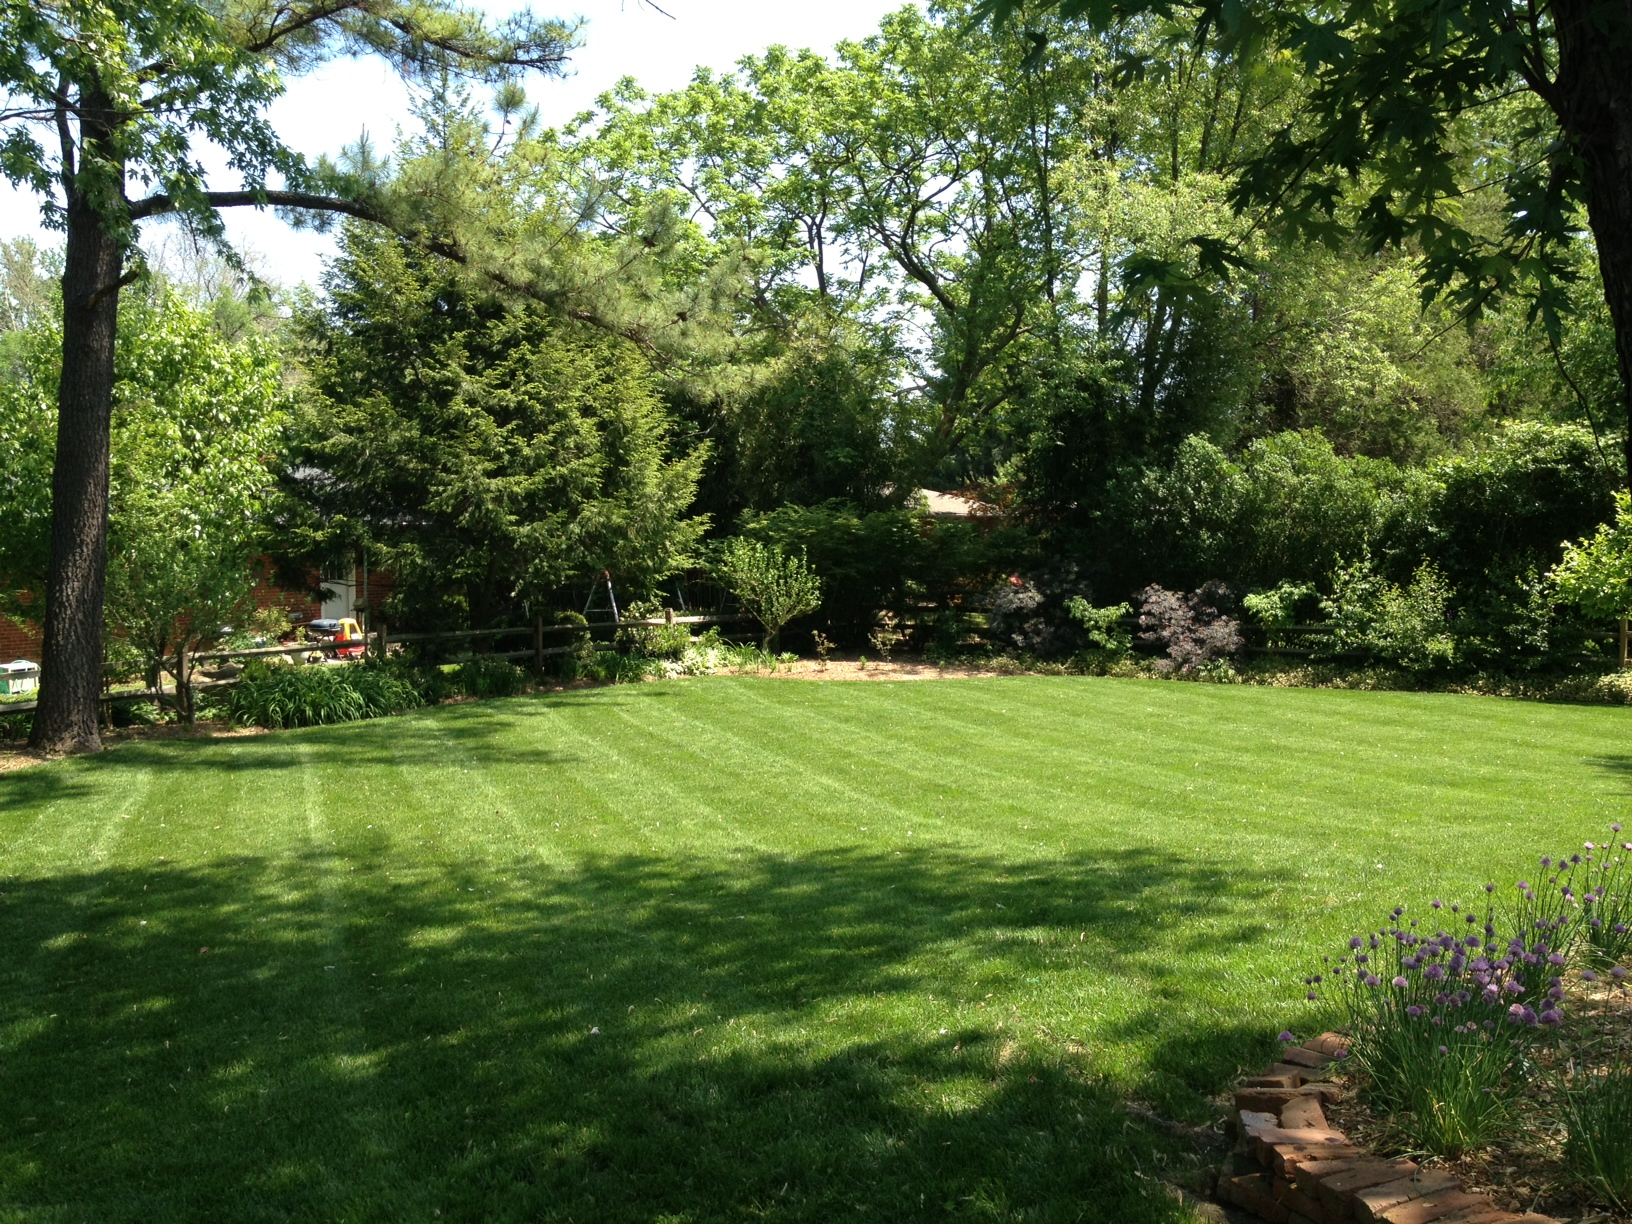 This organic lawn looks way better than its conventional neighbors!